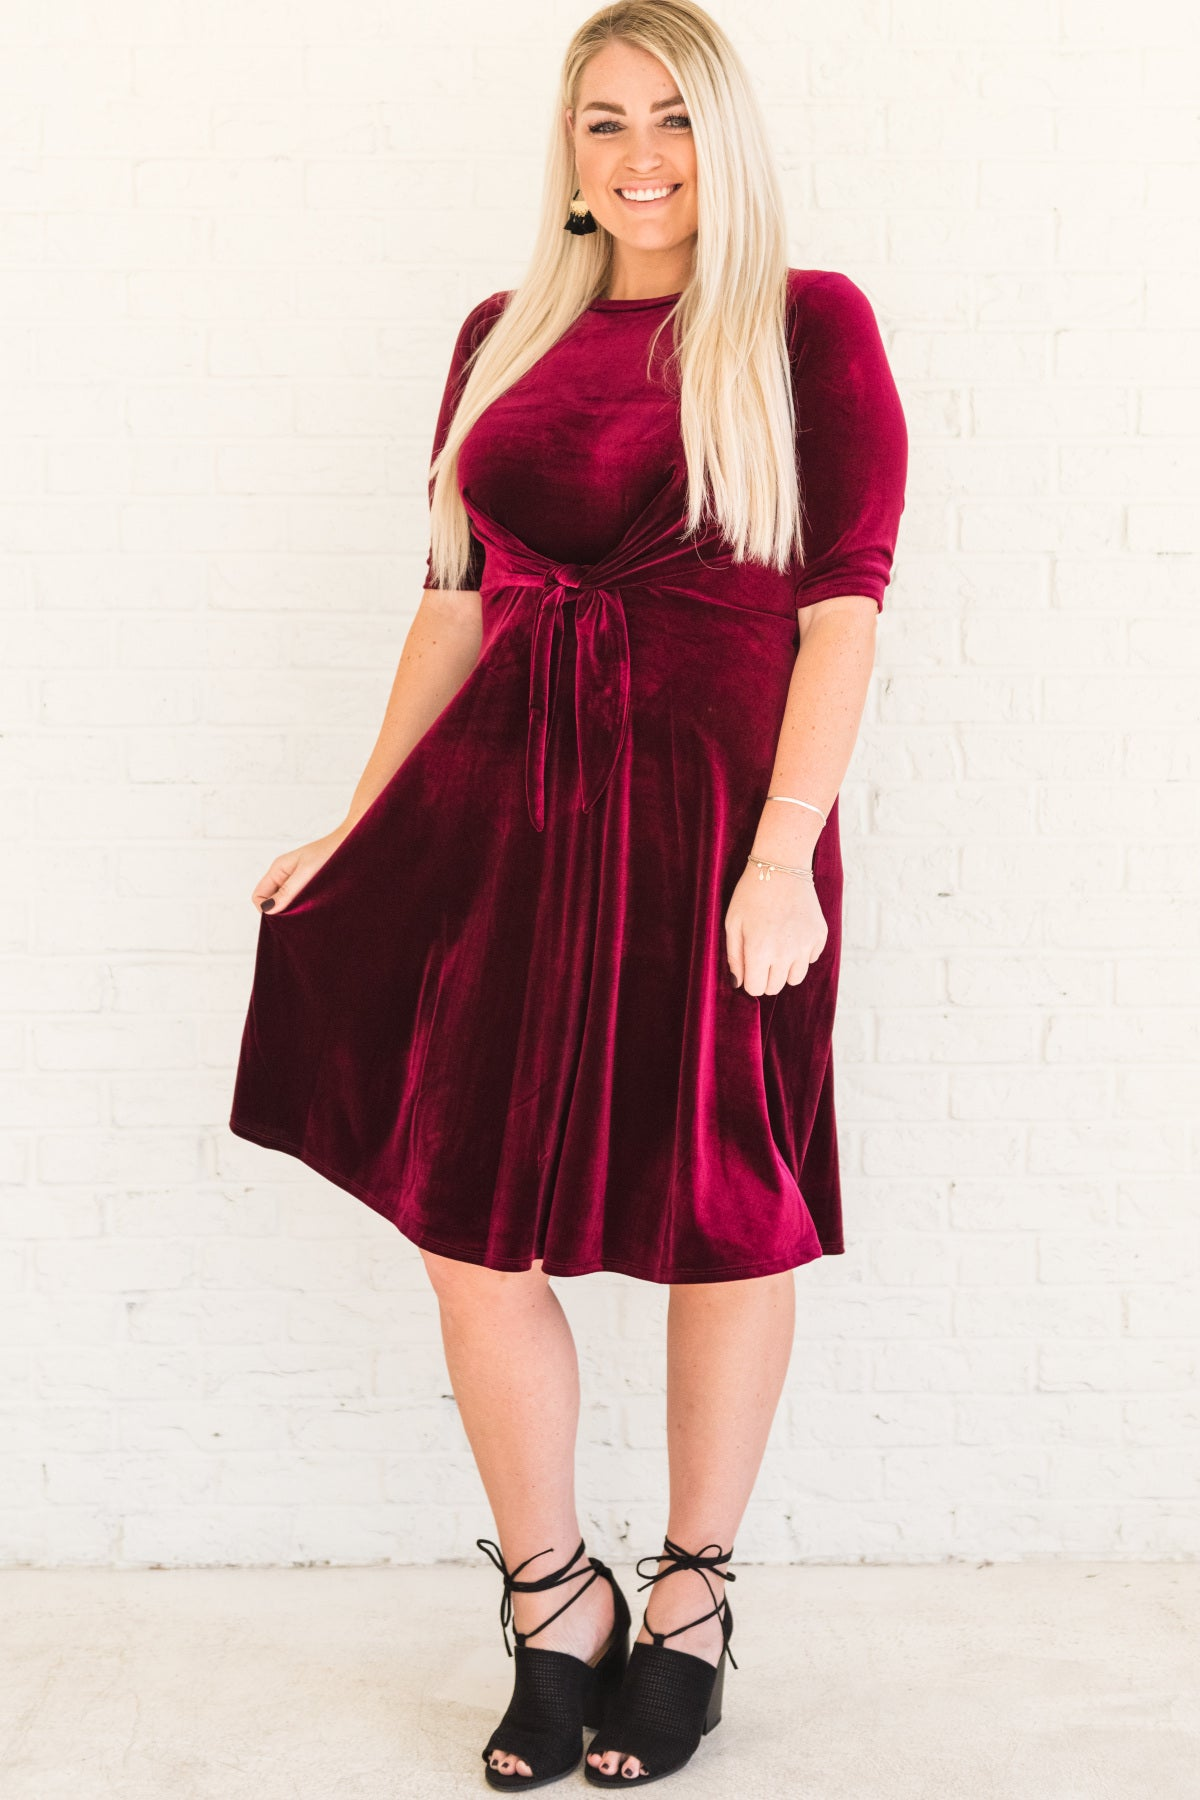 cc970977392 Burgundy Red Plus Size Velvet Midi Dress Tie Front Detail Holiday Party